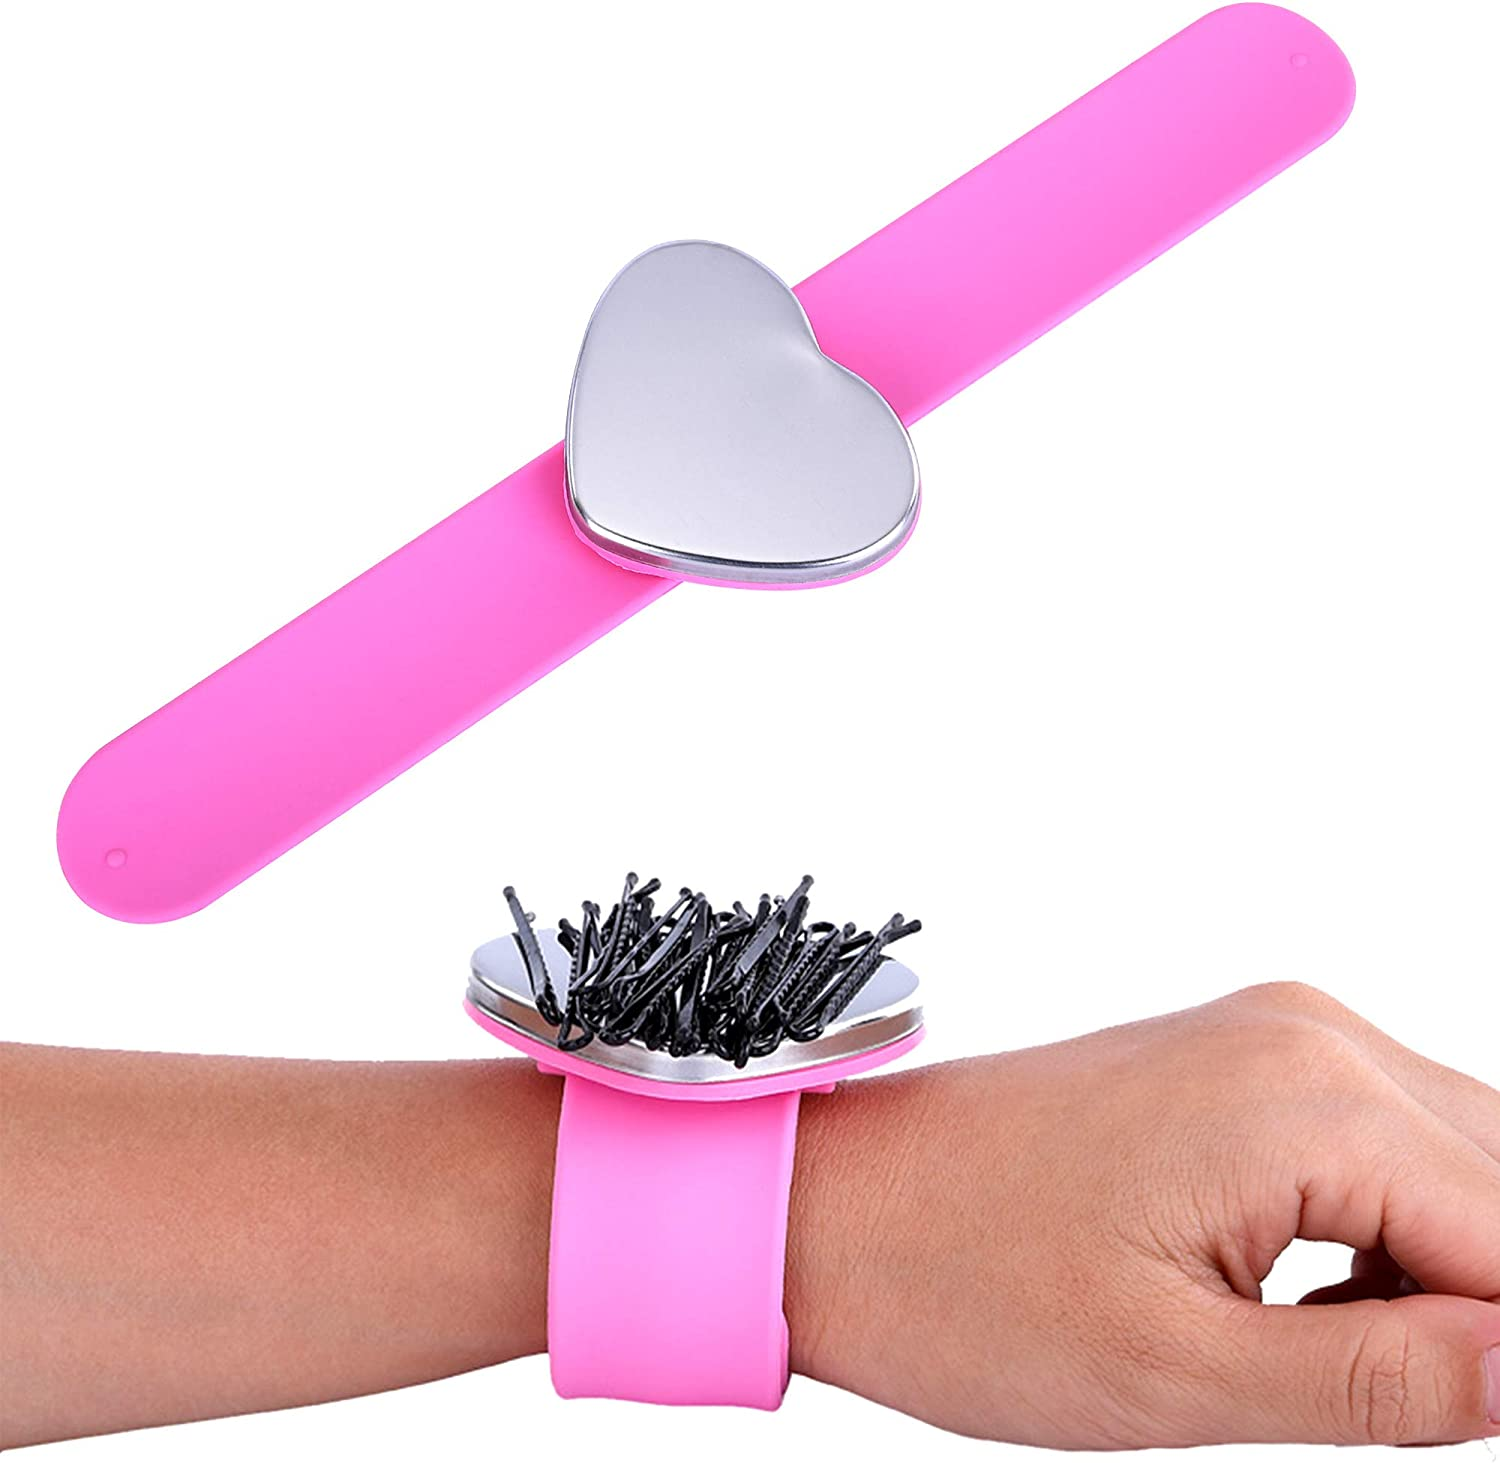 Healifty 2 pieces magnetic pin cushion bracelet magnetic arm pin cushion clap bracelet wrist silicone bracelet snap bracelet silicone magnetic bracelet for hairdresser sewing sewing needles cushion